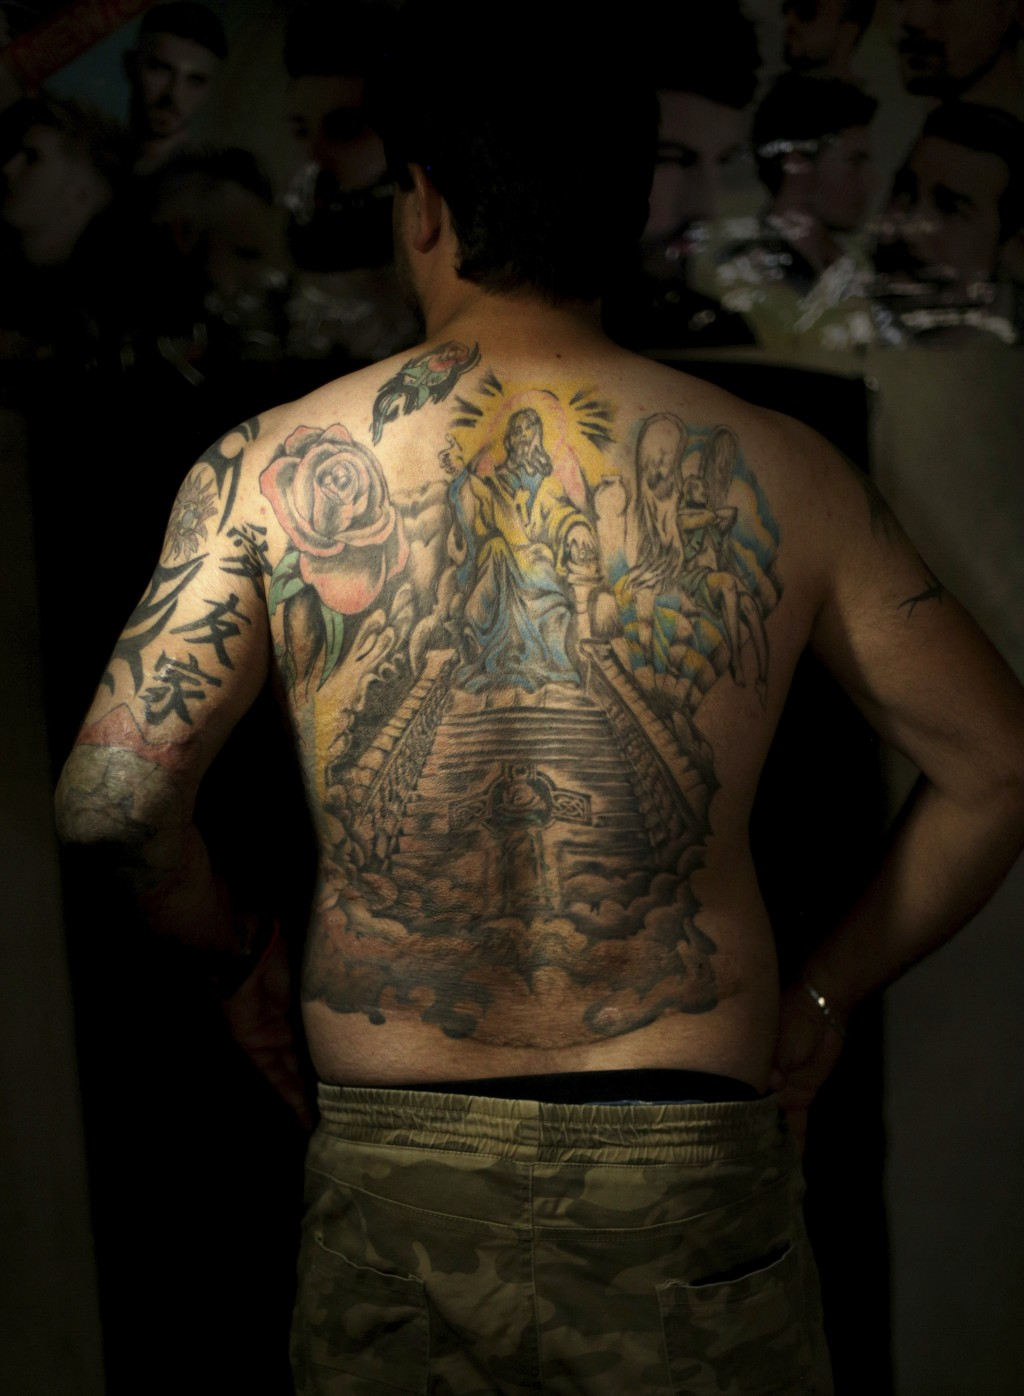 In this Wednesday. Oct. 24, 2018, Iraqi soldier Saad Khudeir displays tattoos on his body to cover scars of the burns he was injured in a car bomb, in